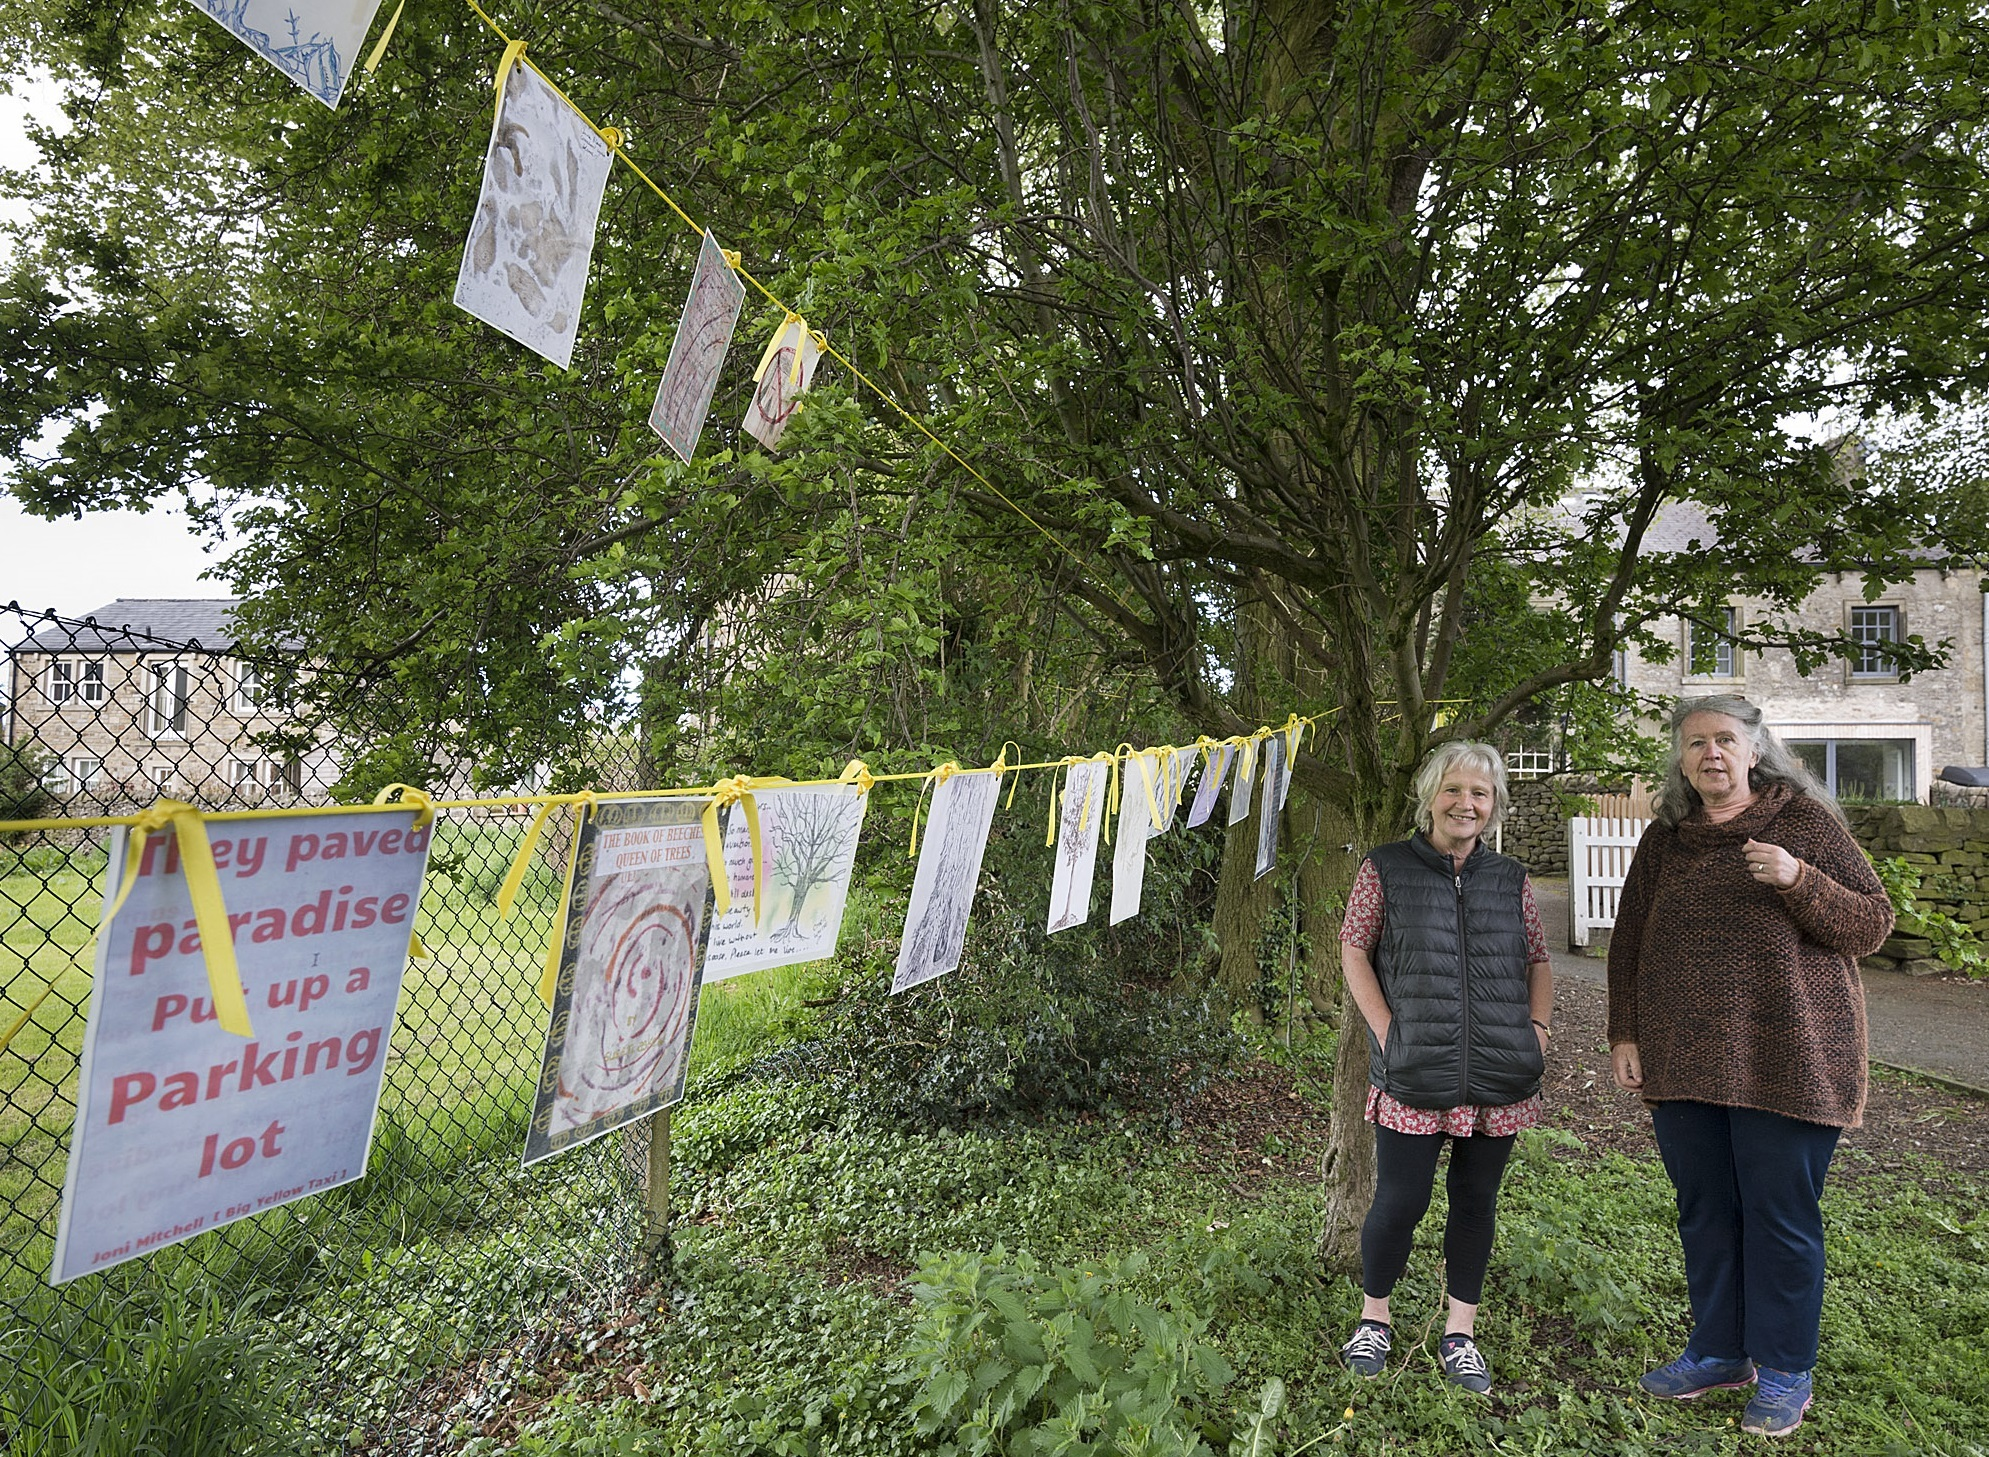 ROOTS campaigner Jenny Hall, left, with artist Susan Askew  at the installation around the 150-year-old beech tree in Settle which is under threat from pitch drainage improvements